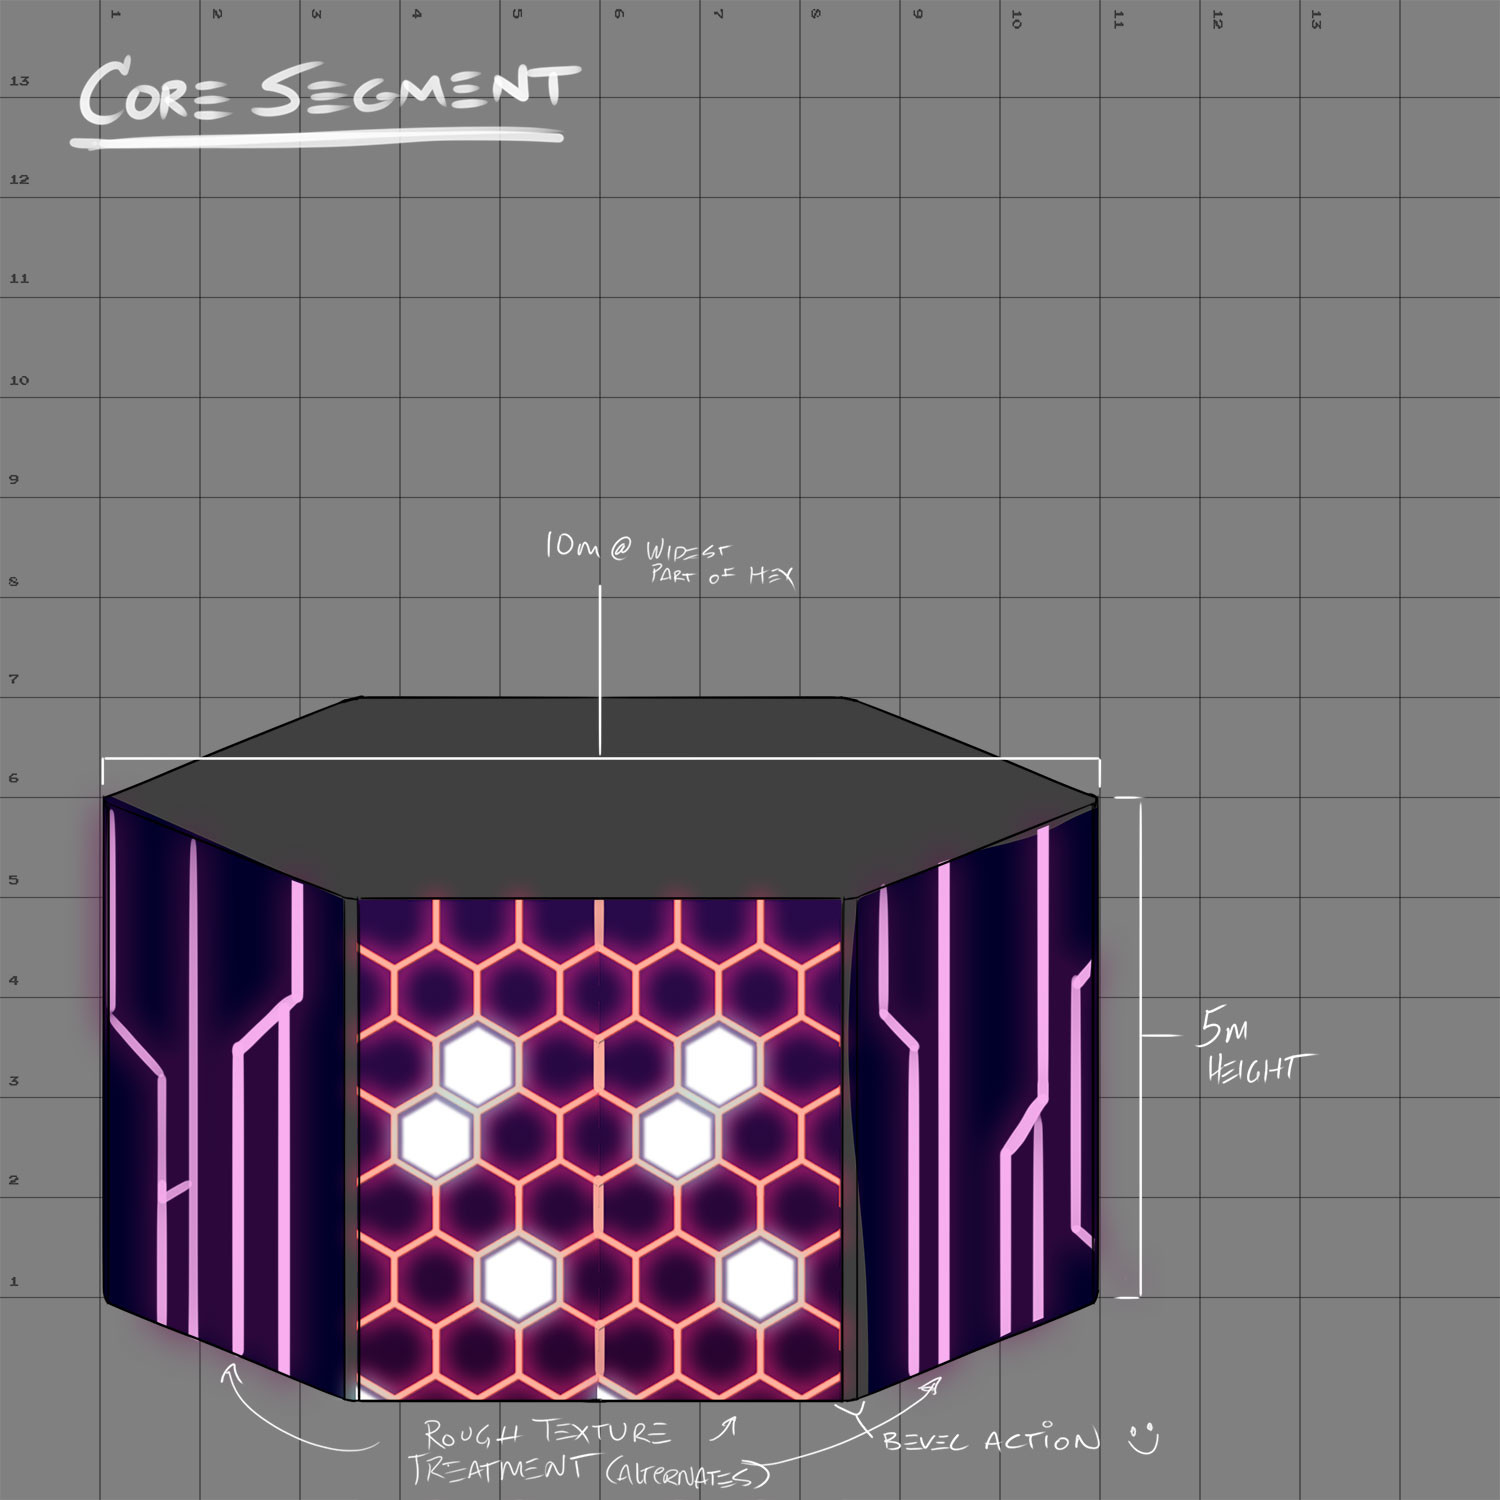 Concept for the core hexagonal segment to be used as the building block for the scene.